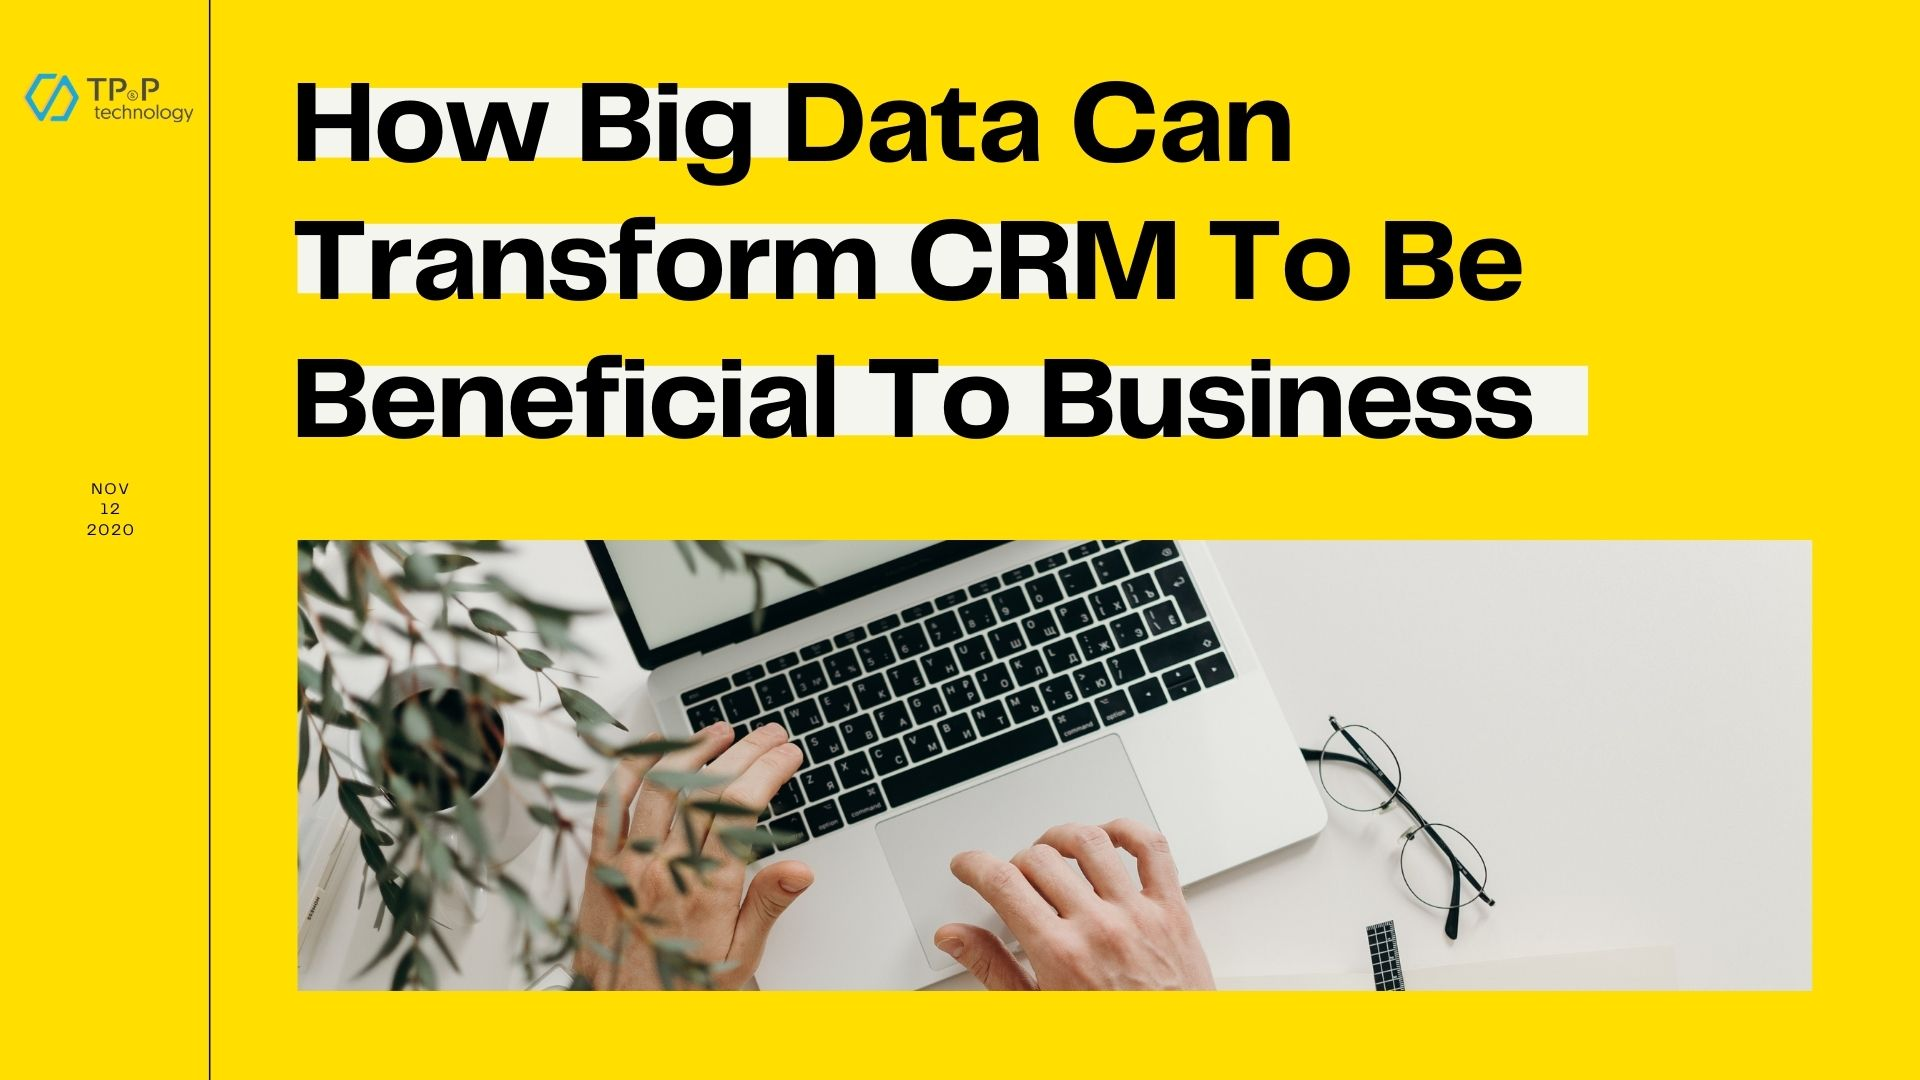 How Big Data Can Transform CRM To Be Beneficial To Business